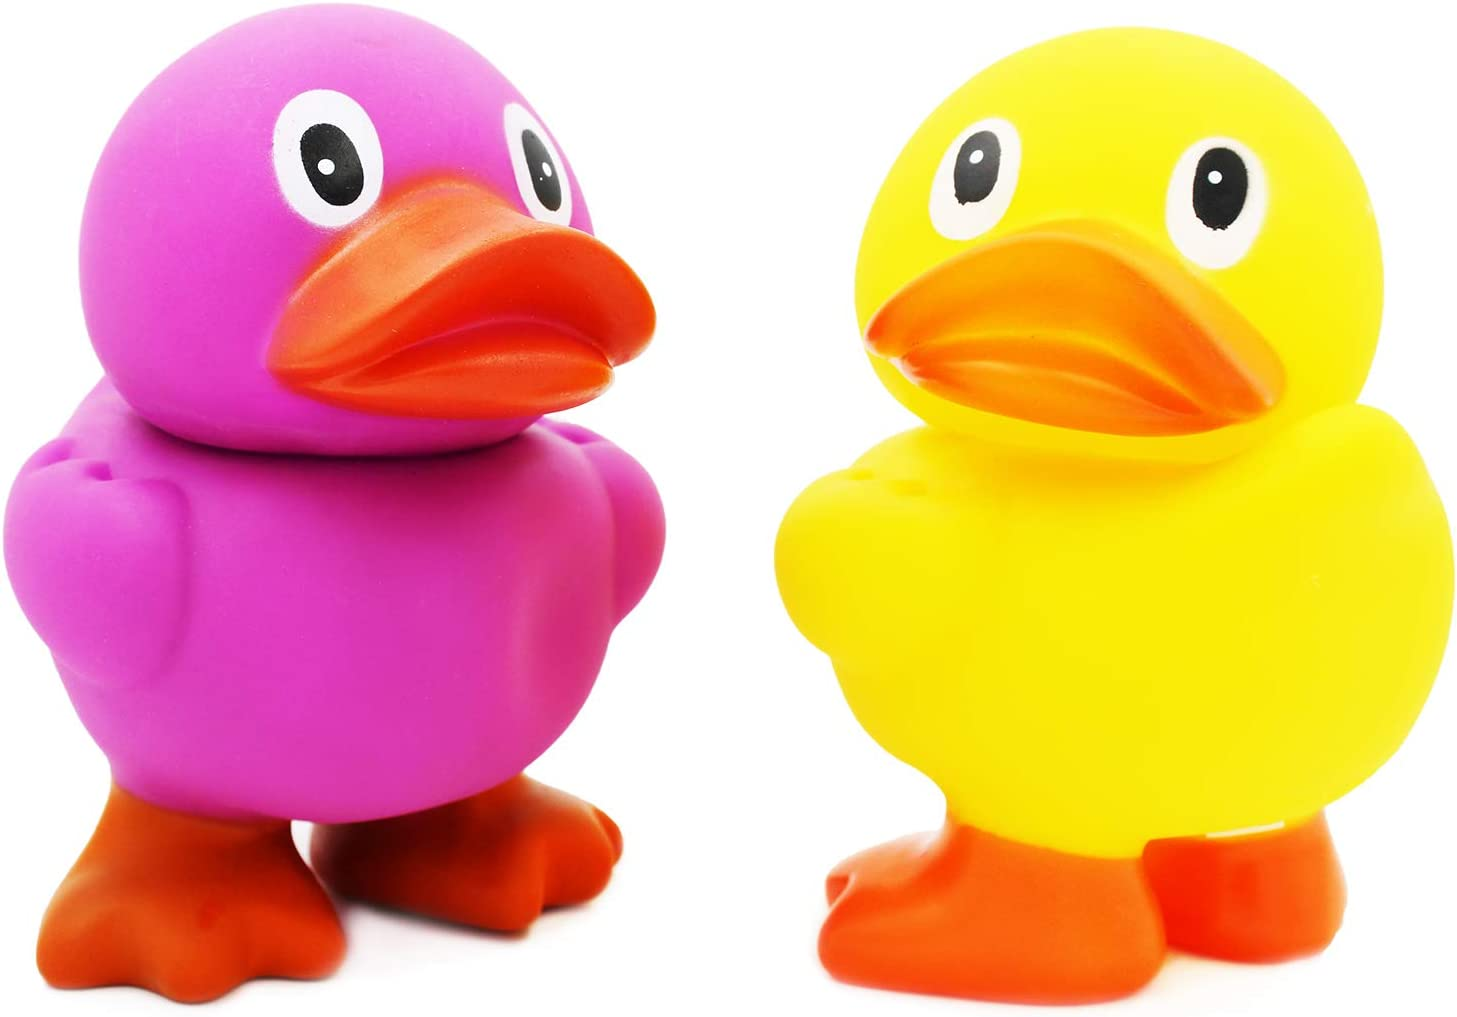 Bath Pool Activity 6.5 Tall Jumbo Rubber Duck Toy With Flippers Baby Shower Giant Rubber Duckies for Kids 2-Pack Assorted Party Favors Squeeze To Squeak N Quack Birthday